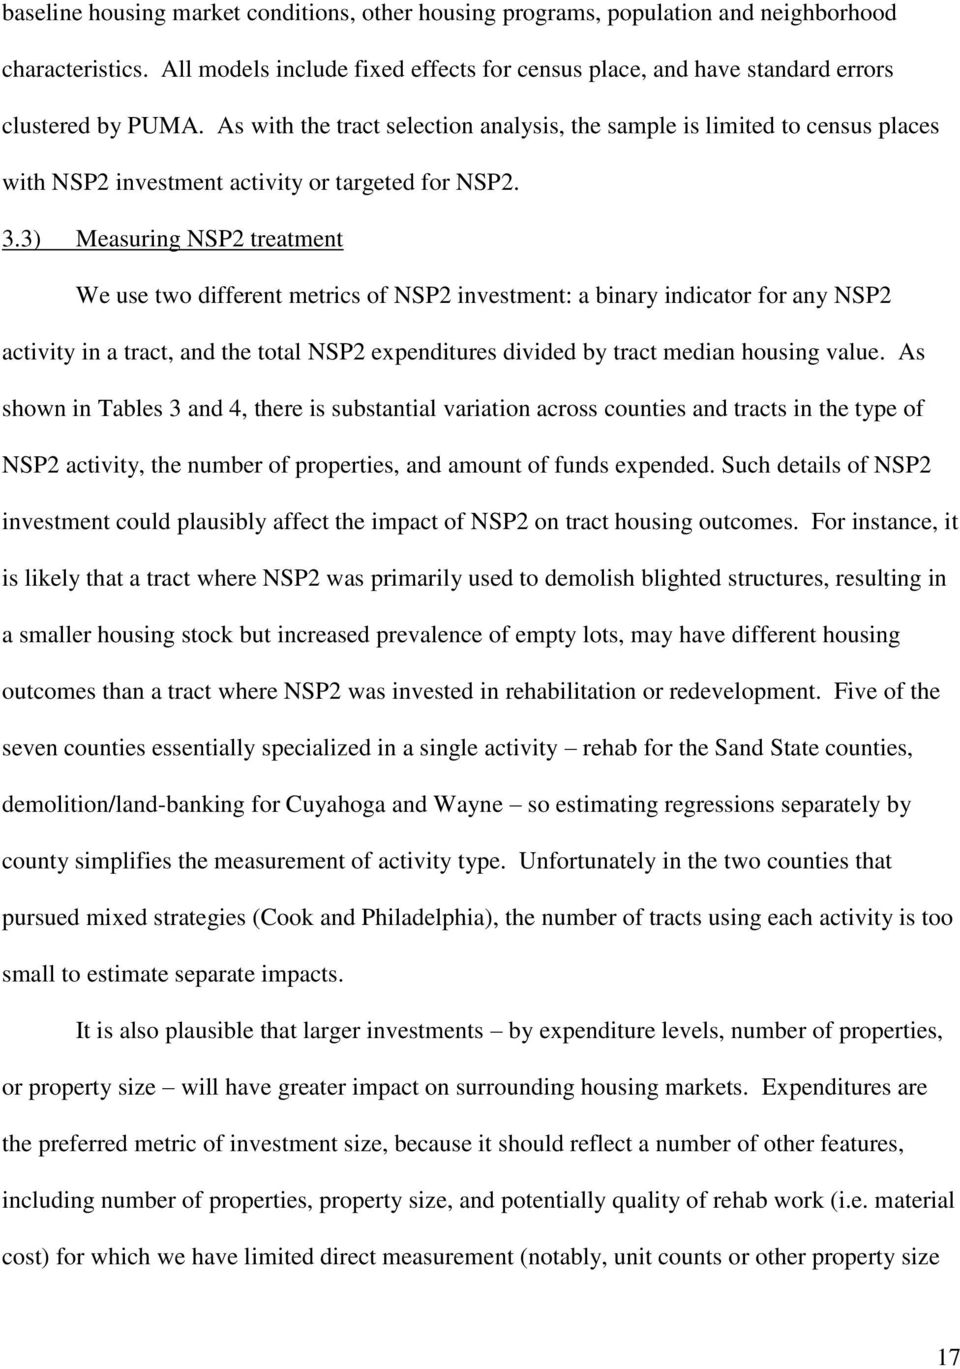 3) Measuring NSP2 treatment We use two different metrics of NSP2 investment: a binary indicator for any NSP2 activity in a tract, and the total NSP2 expenditures divided by tract median housing value.